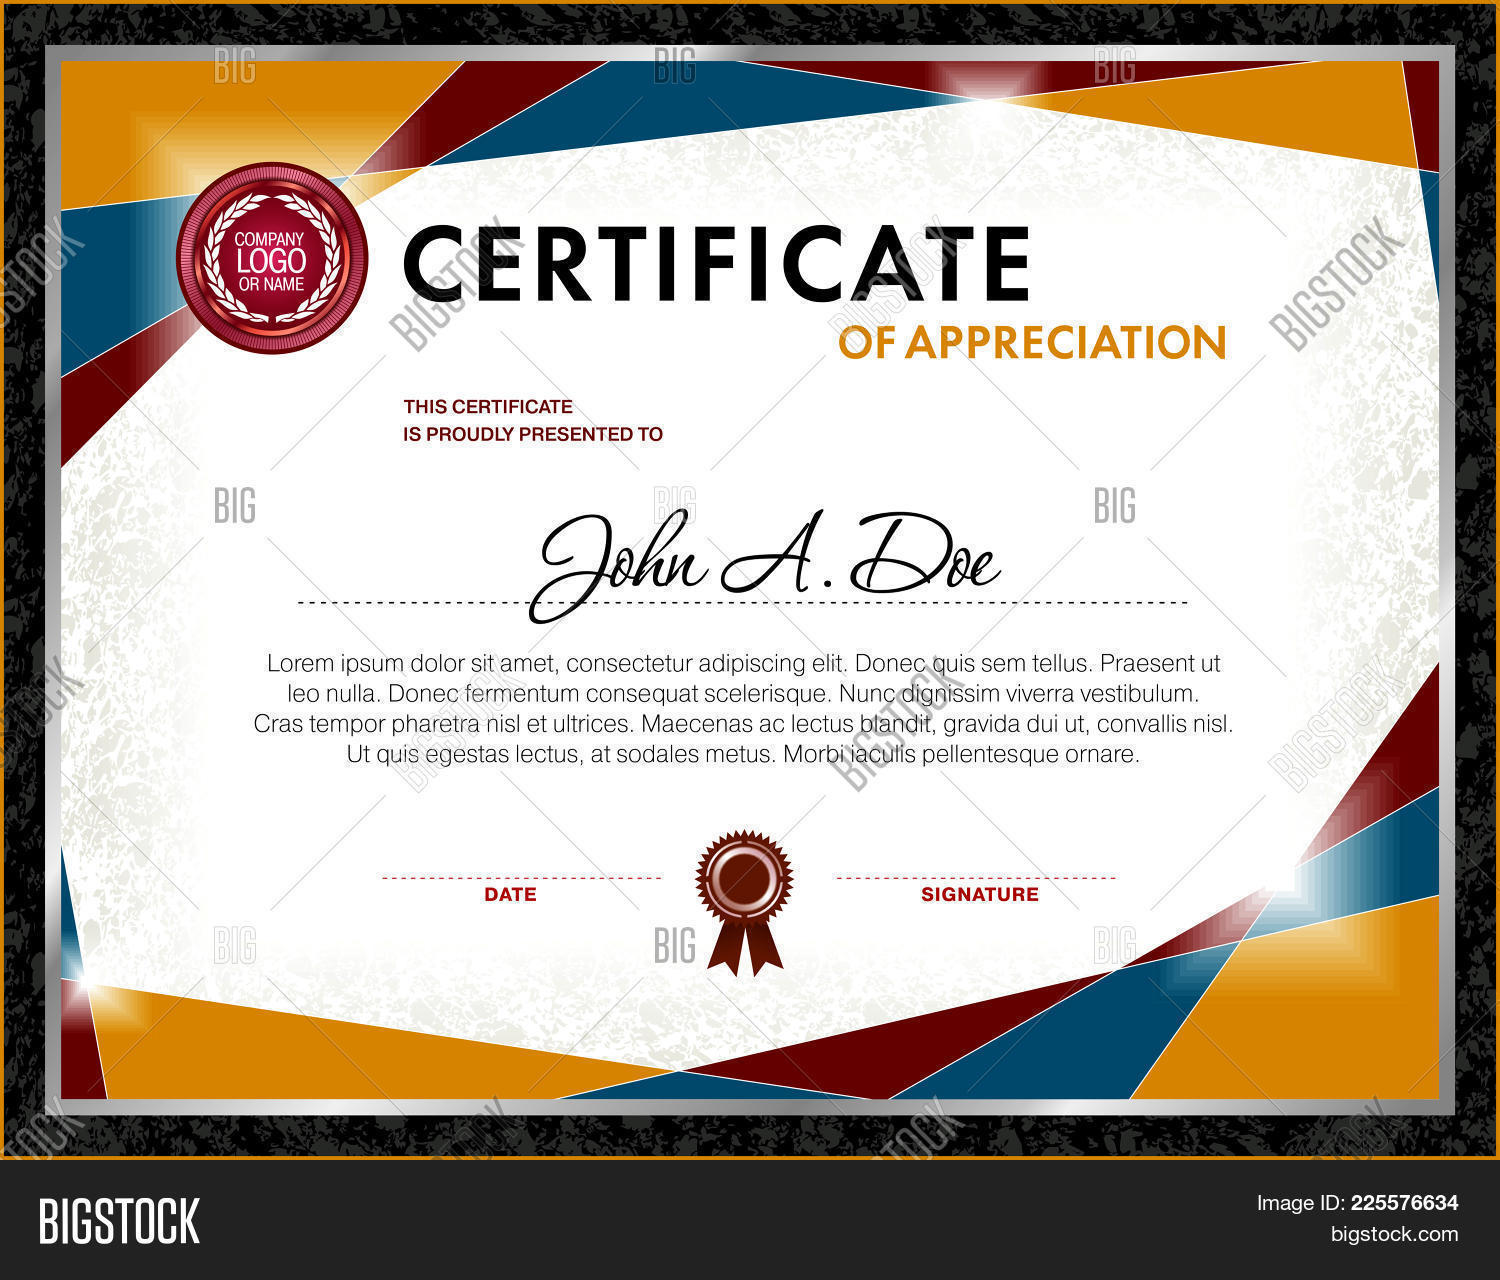 Certificate Of Appreciation Powerpoint Template Certificate Of